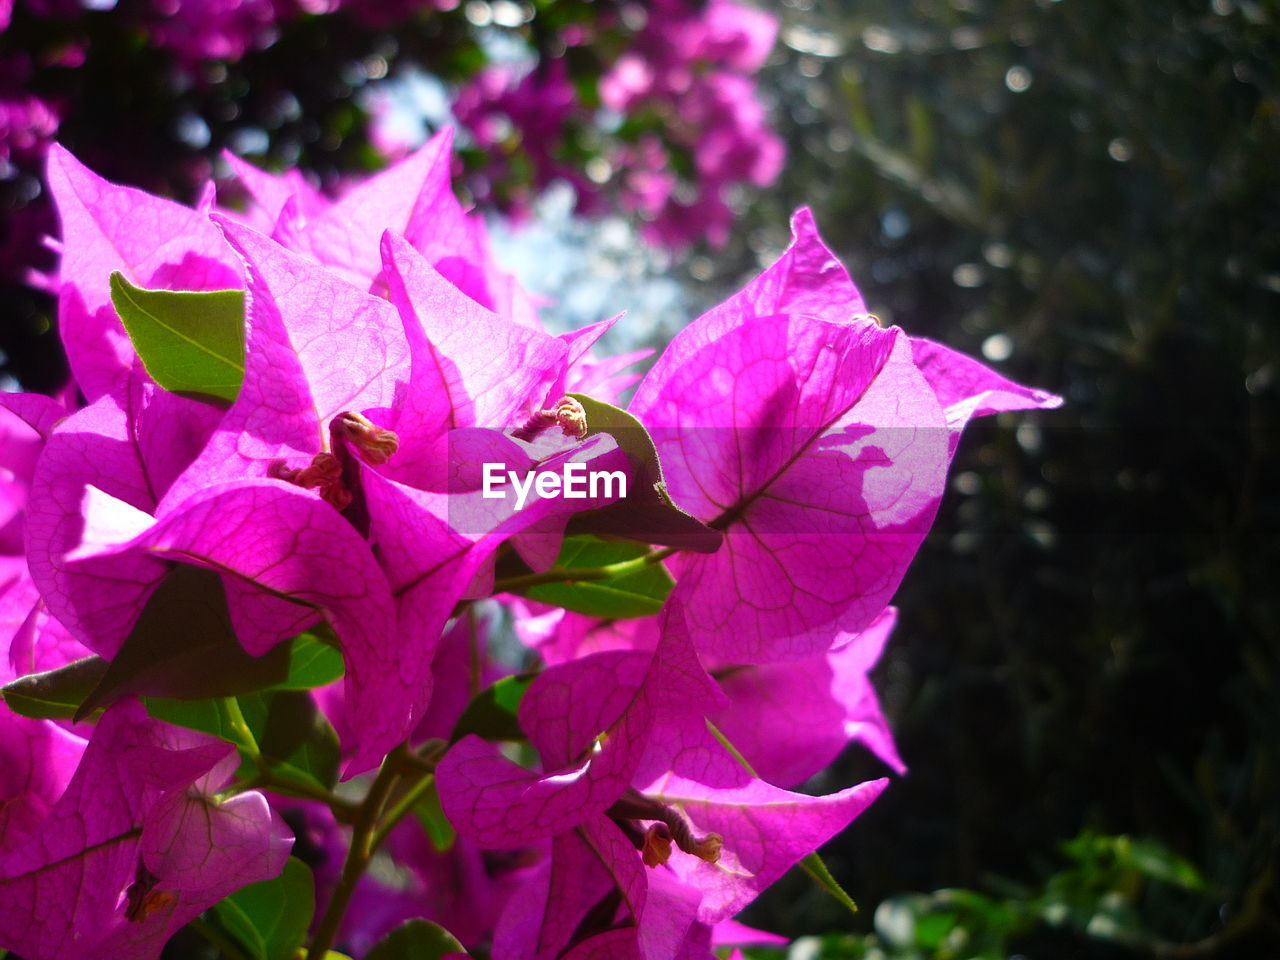 nature, beauty in nature, pink color, outdoors, flower, fragility, day, petal, leaf, growth, no people, focus on foreground, bougainvillea, plant, close-up, flower head, petunia, freshness, periwinkle